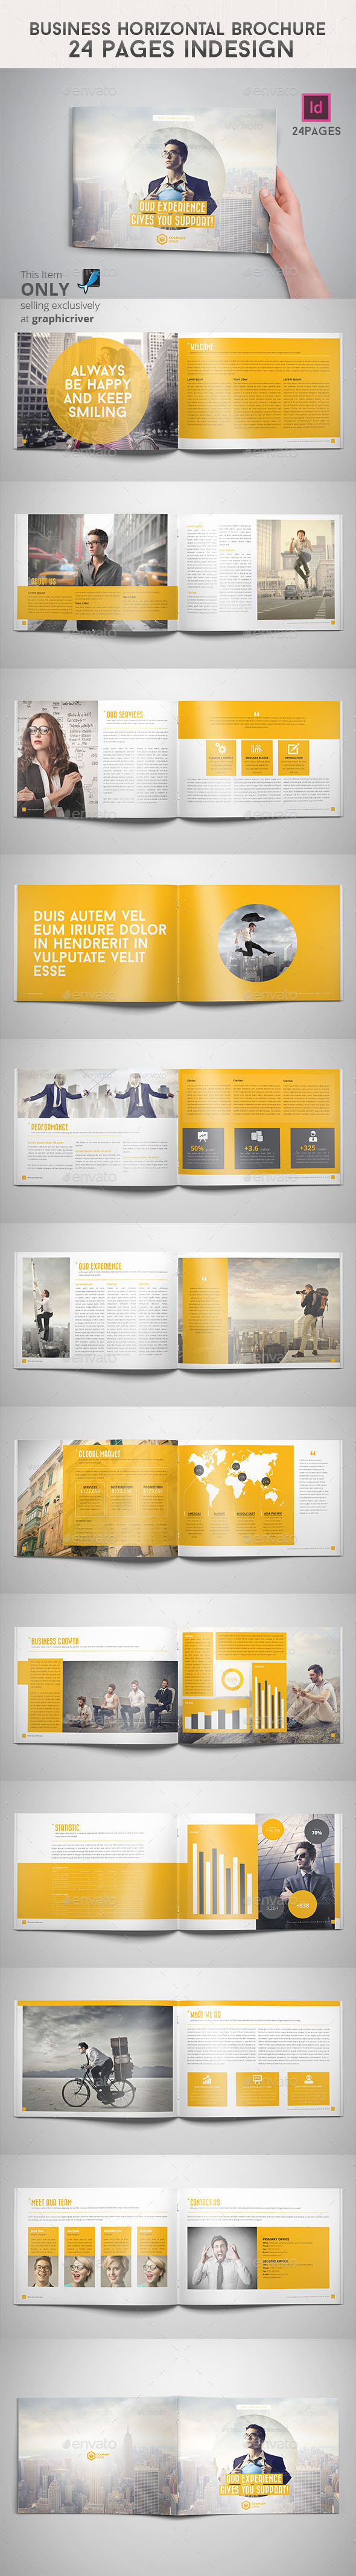 GraphicRiver Business Horizontal Brochure 24 Pages Indesign 9139174